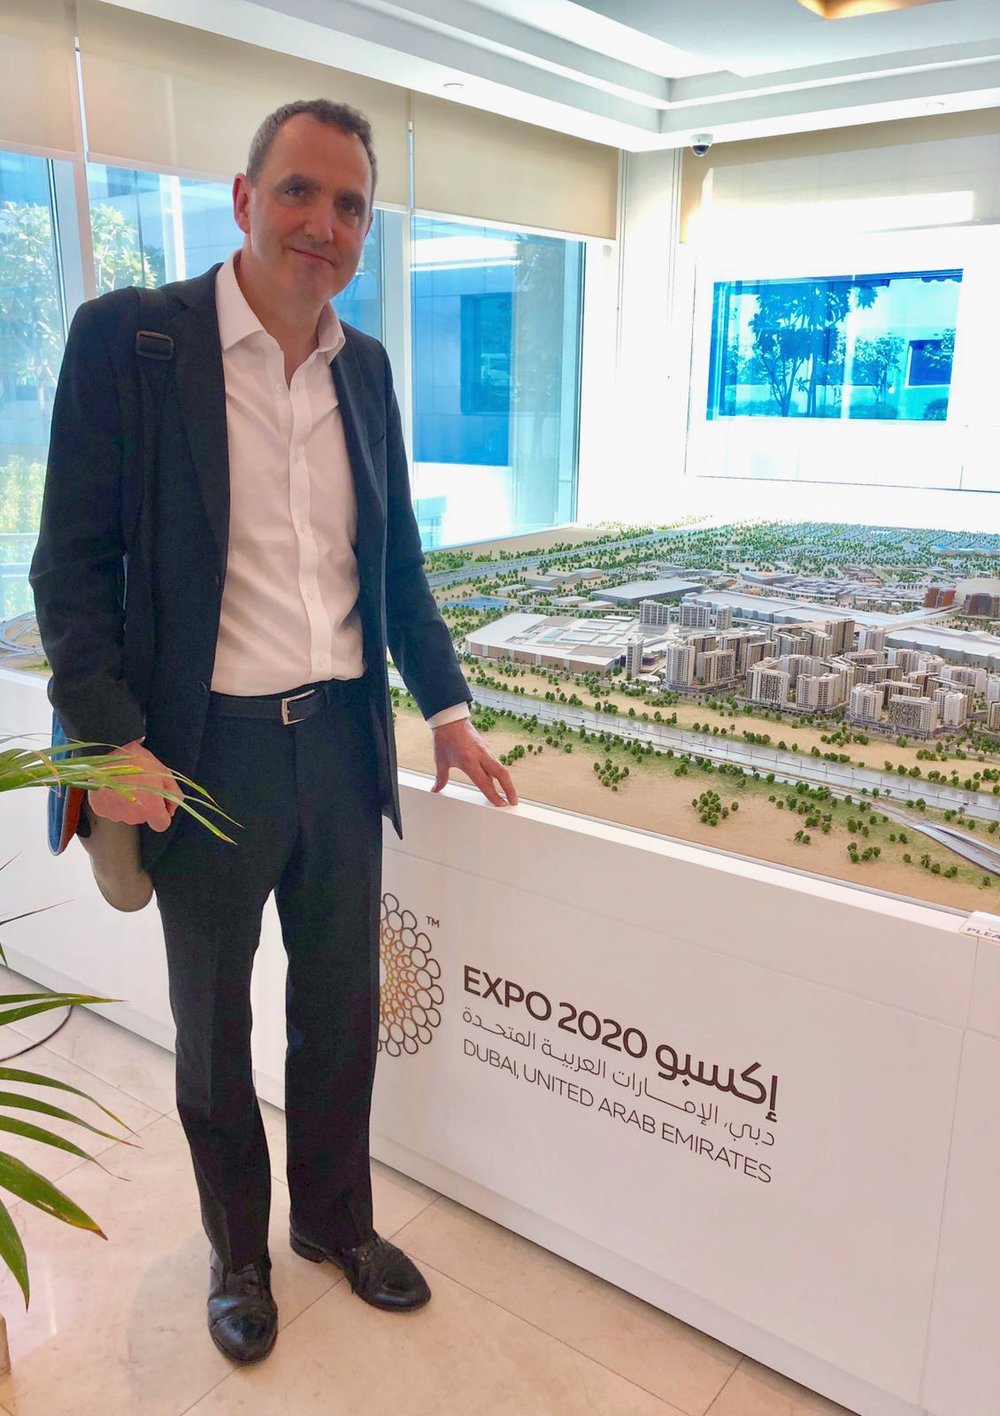 Exciting work ahead - – and we are looking forward to watching Expo 2020 rise from the desert sands over the next 18 months.